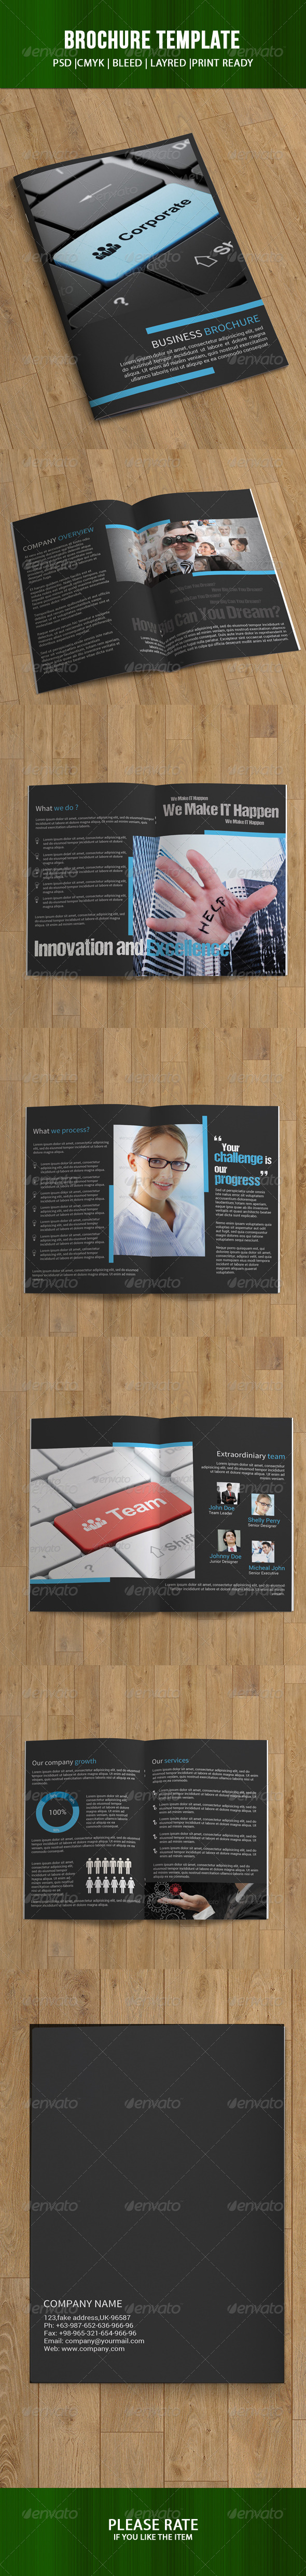 GraphicRiver Business Brochure-12 Pages 7374374